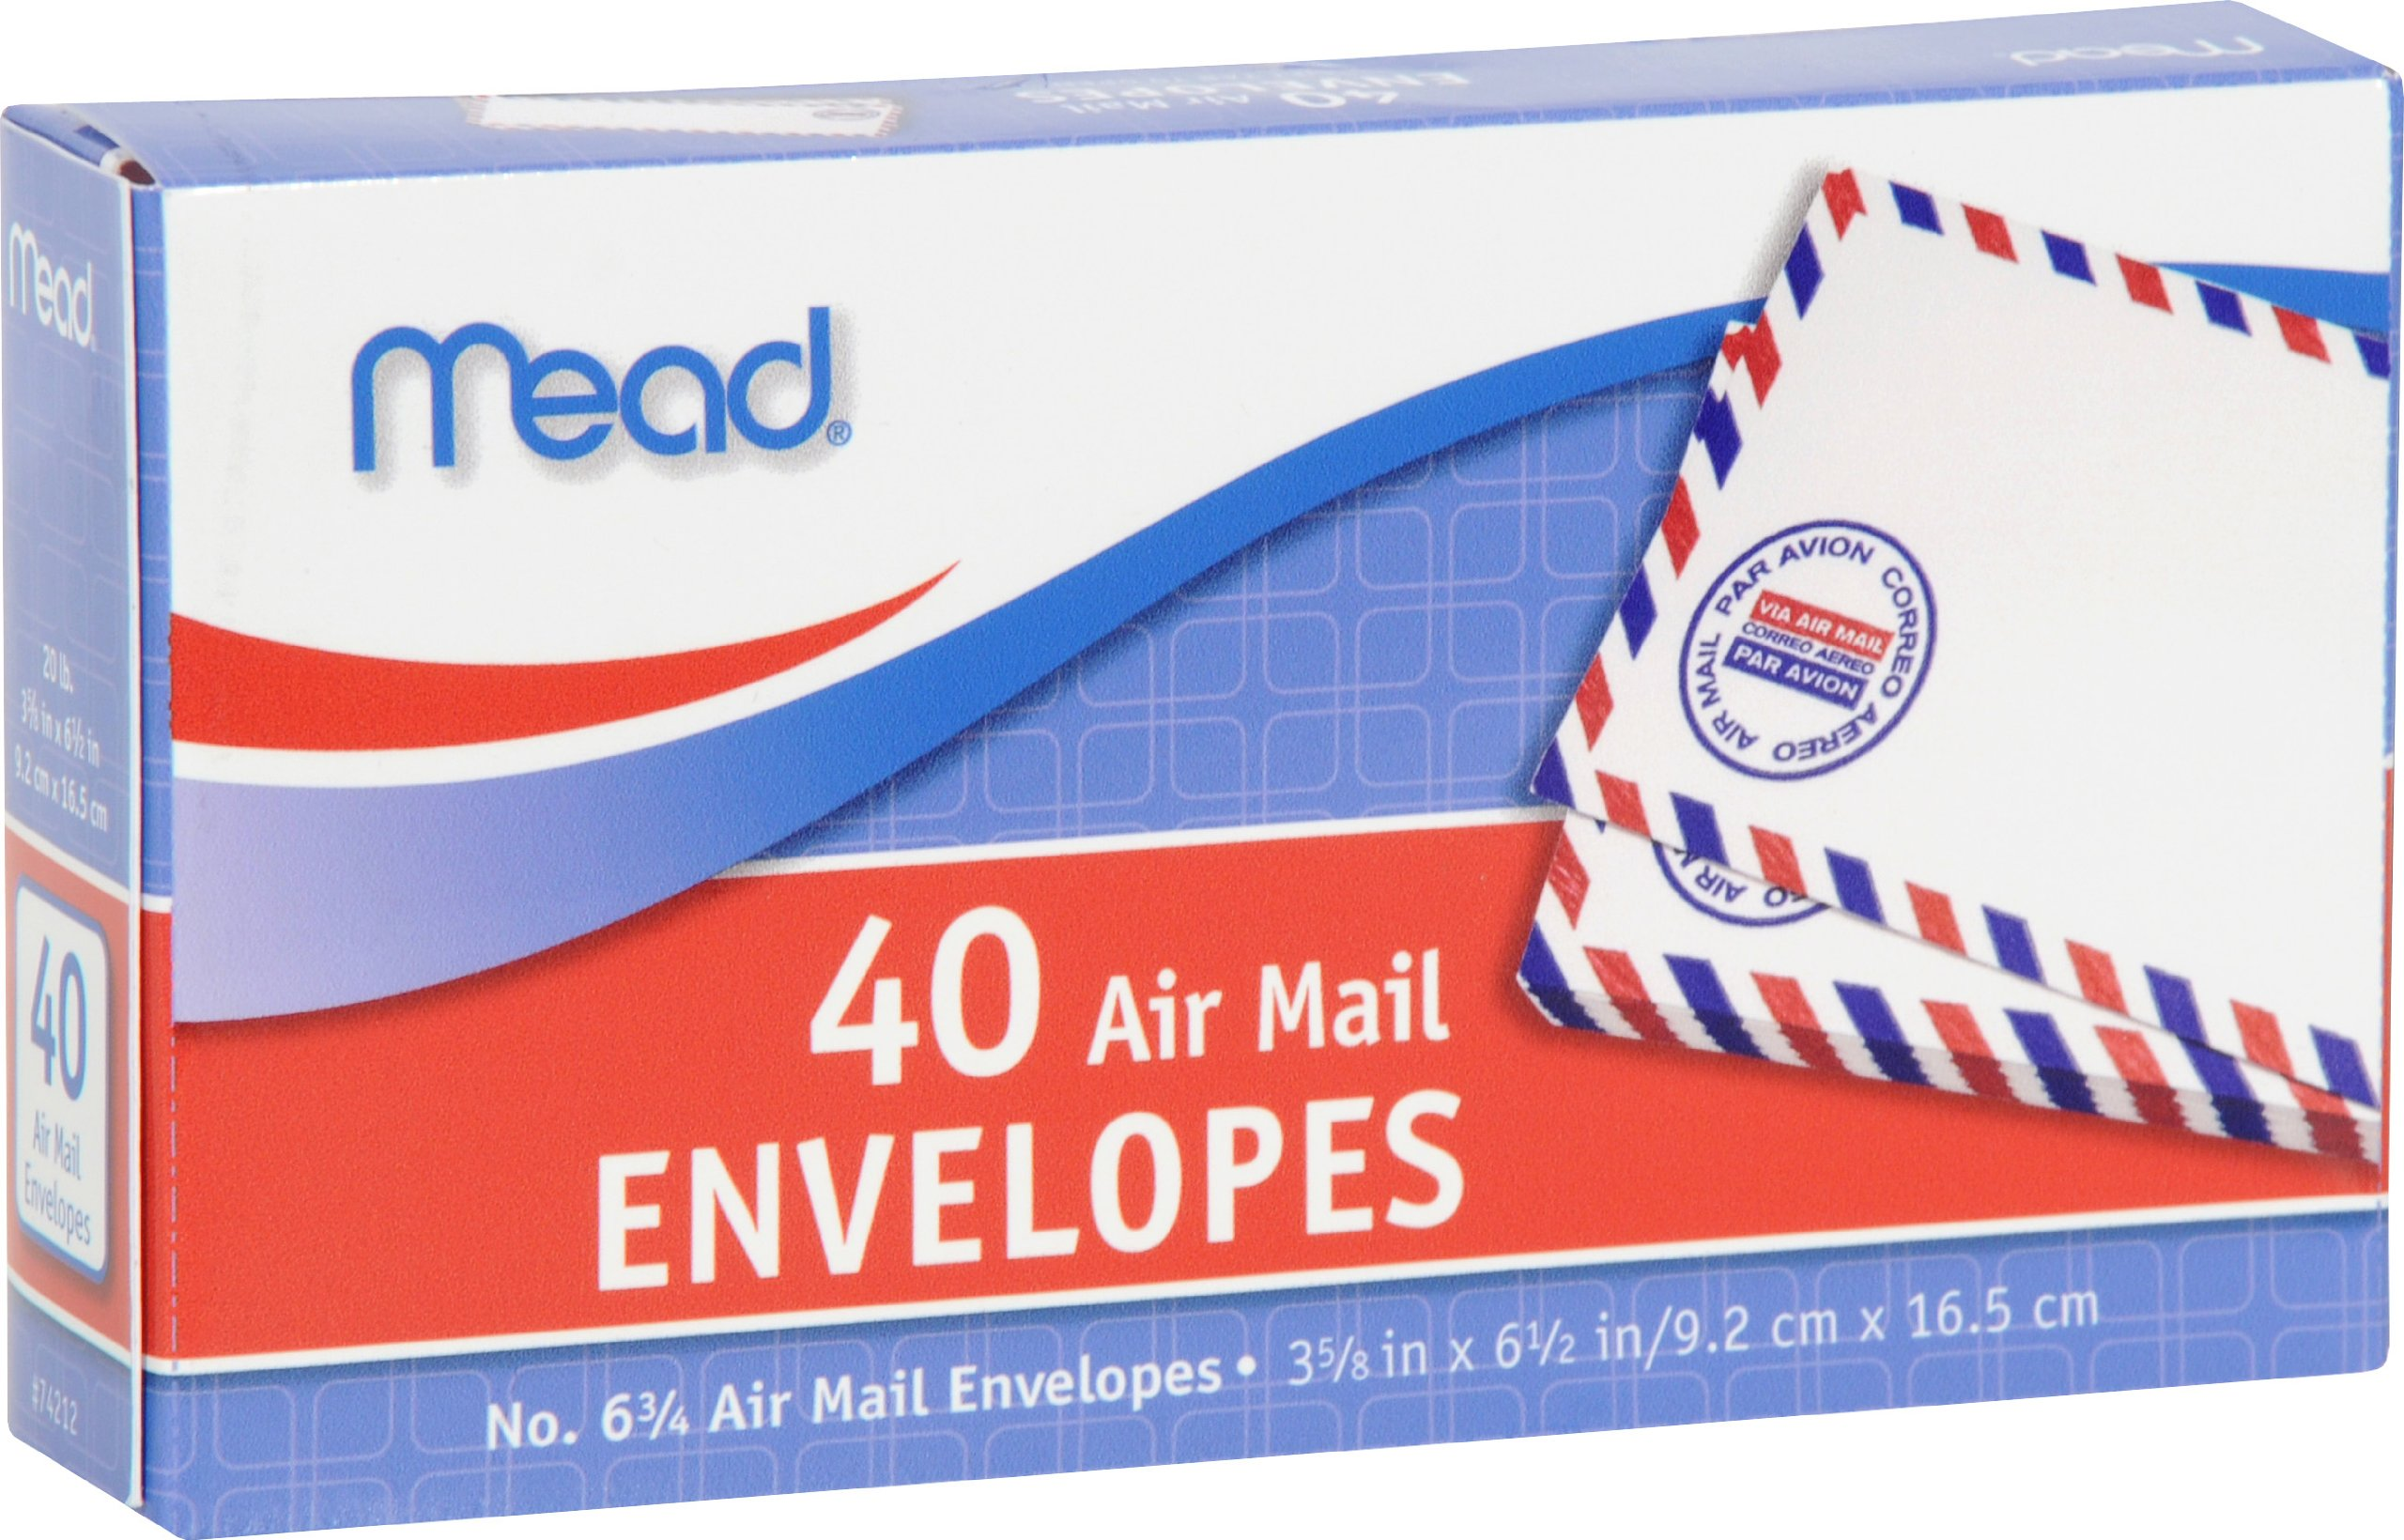 Amazon.com : Mead #6 3/4 Air Mail Envelopes, 40 Count (74212 ...